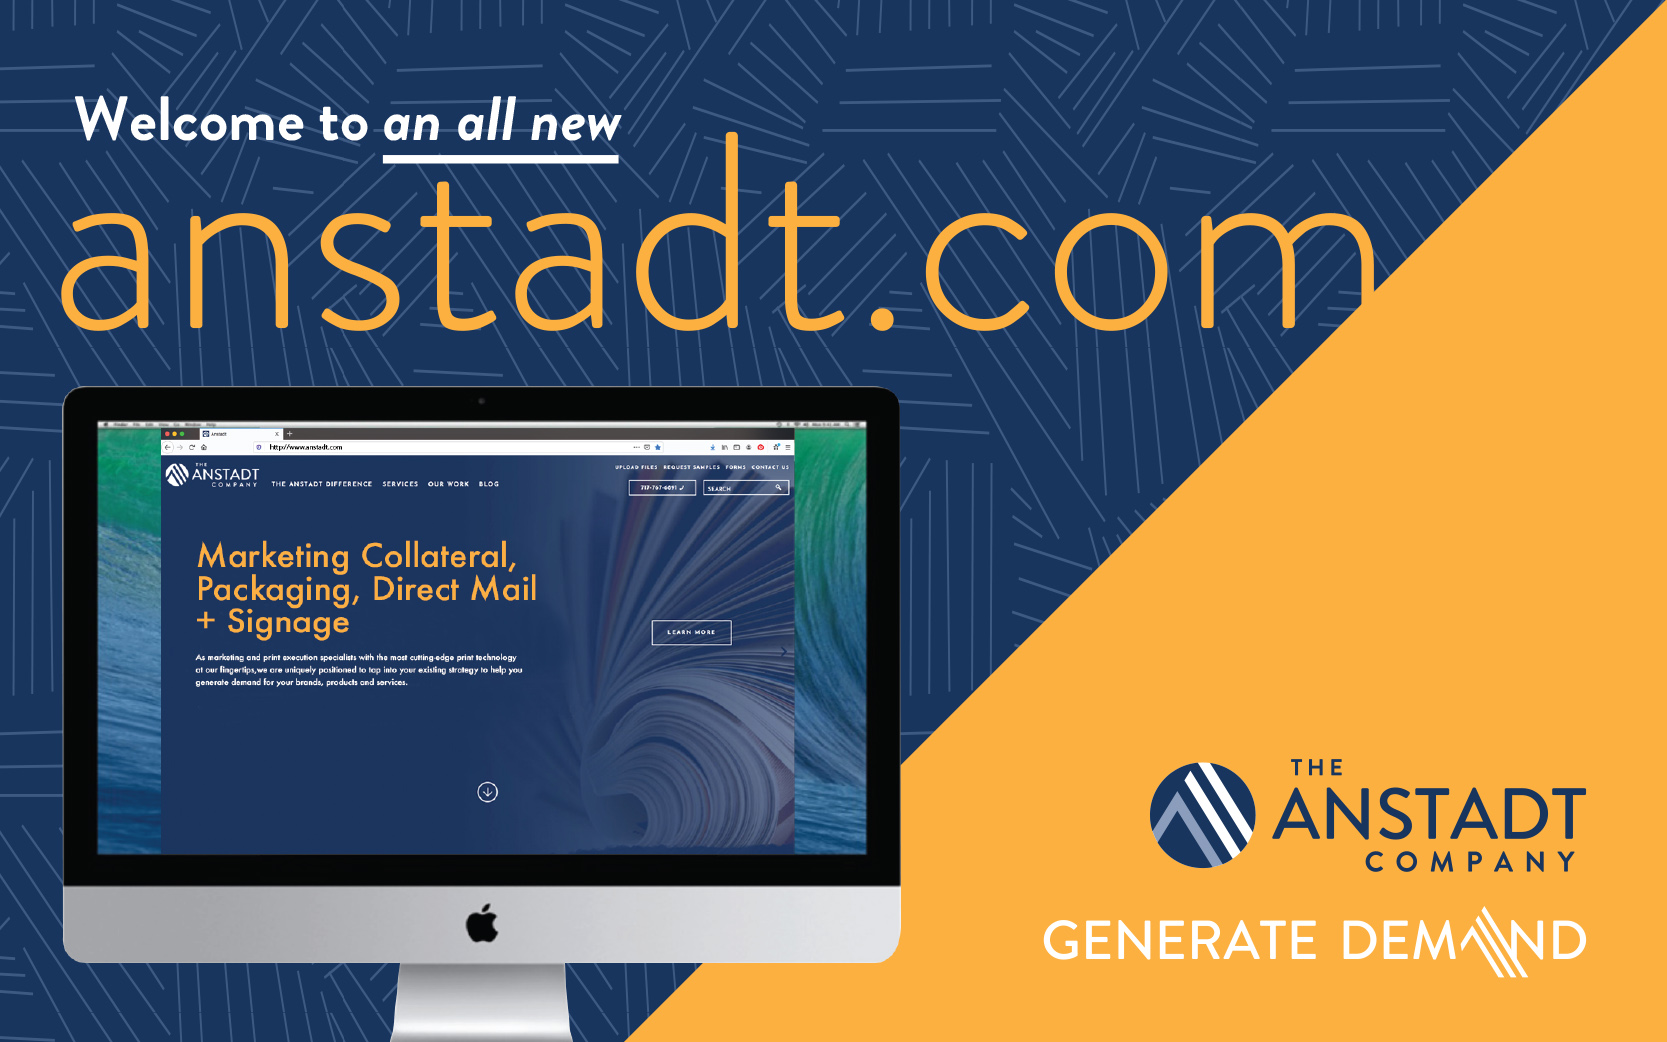 Welcome to an all new anstadt.com